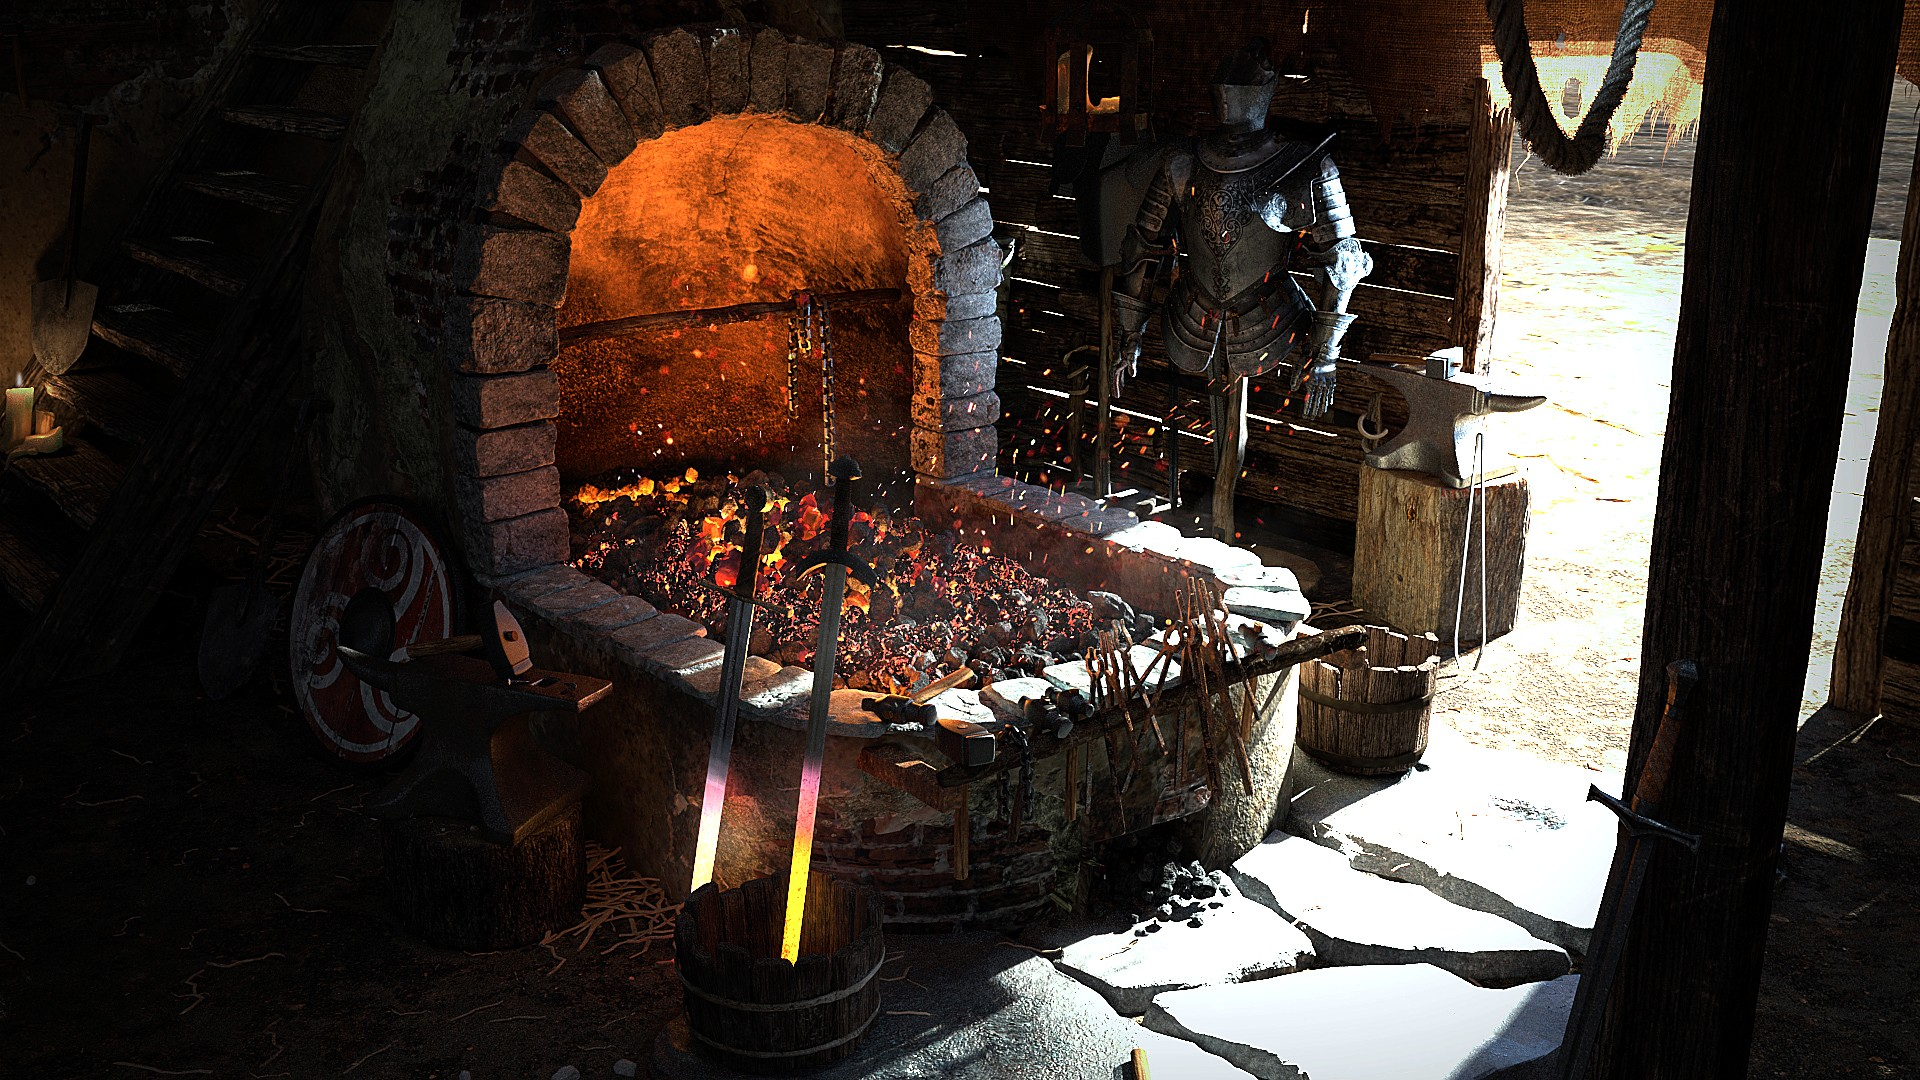 Hit-Series Game of Thrones Inspires Fans to Hit the Anvil ...